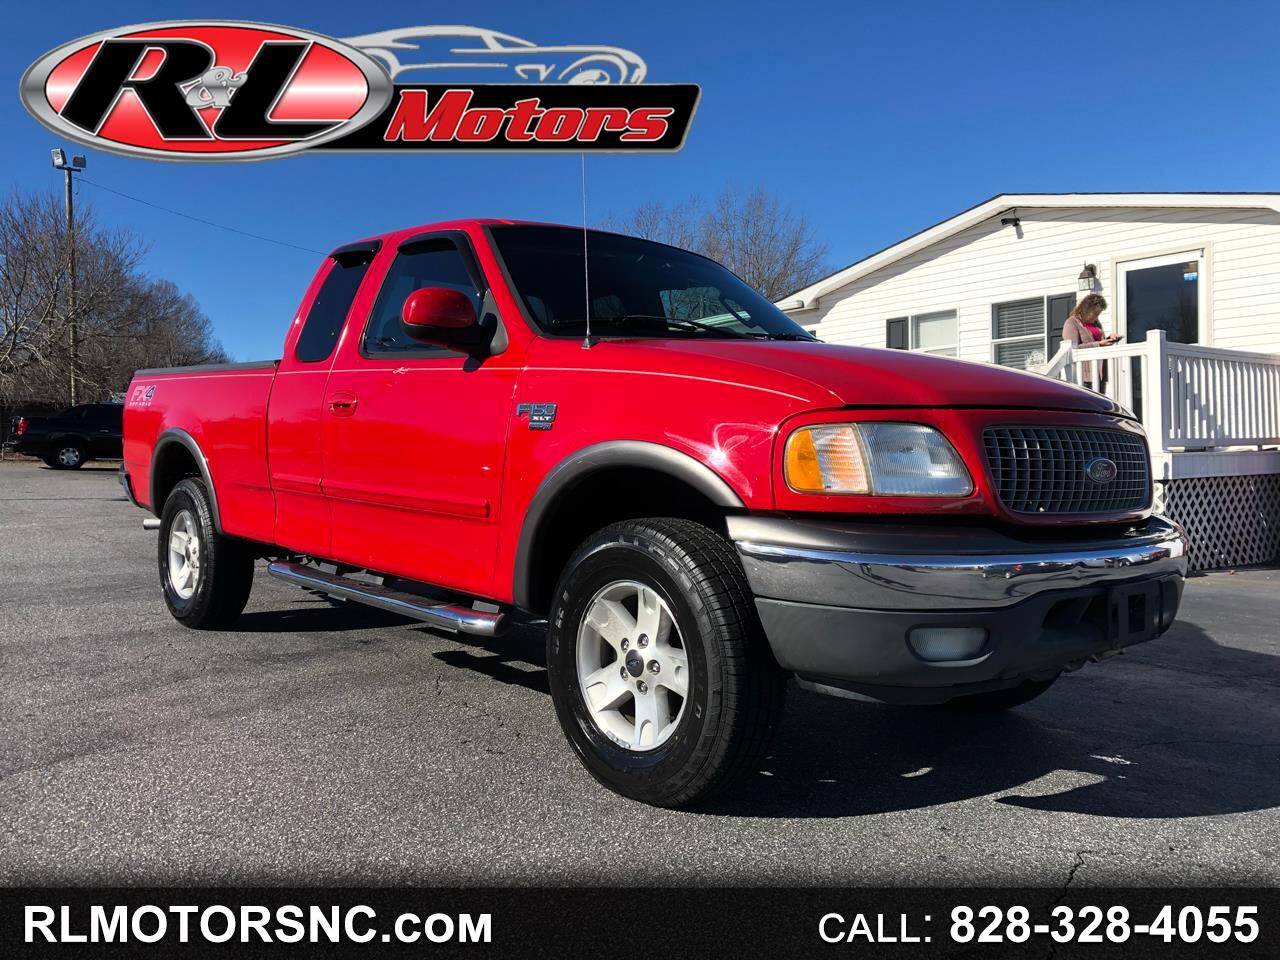 2002 Ford F-150 FX4 SuperCab 4WD